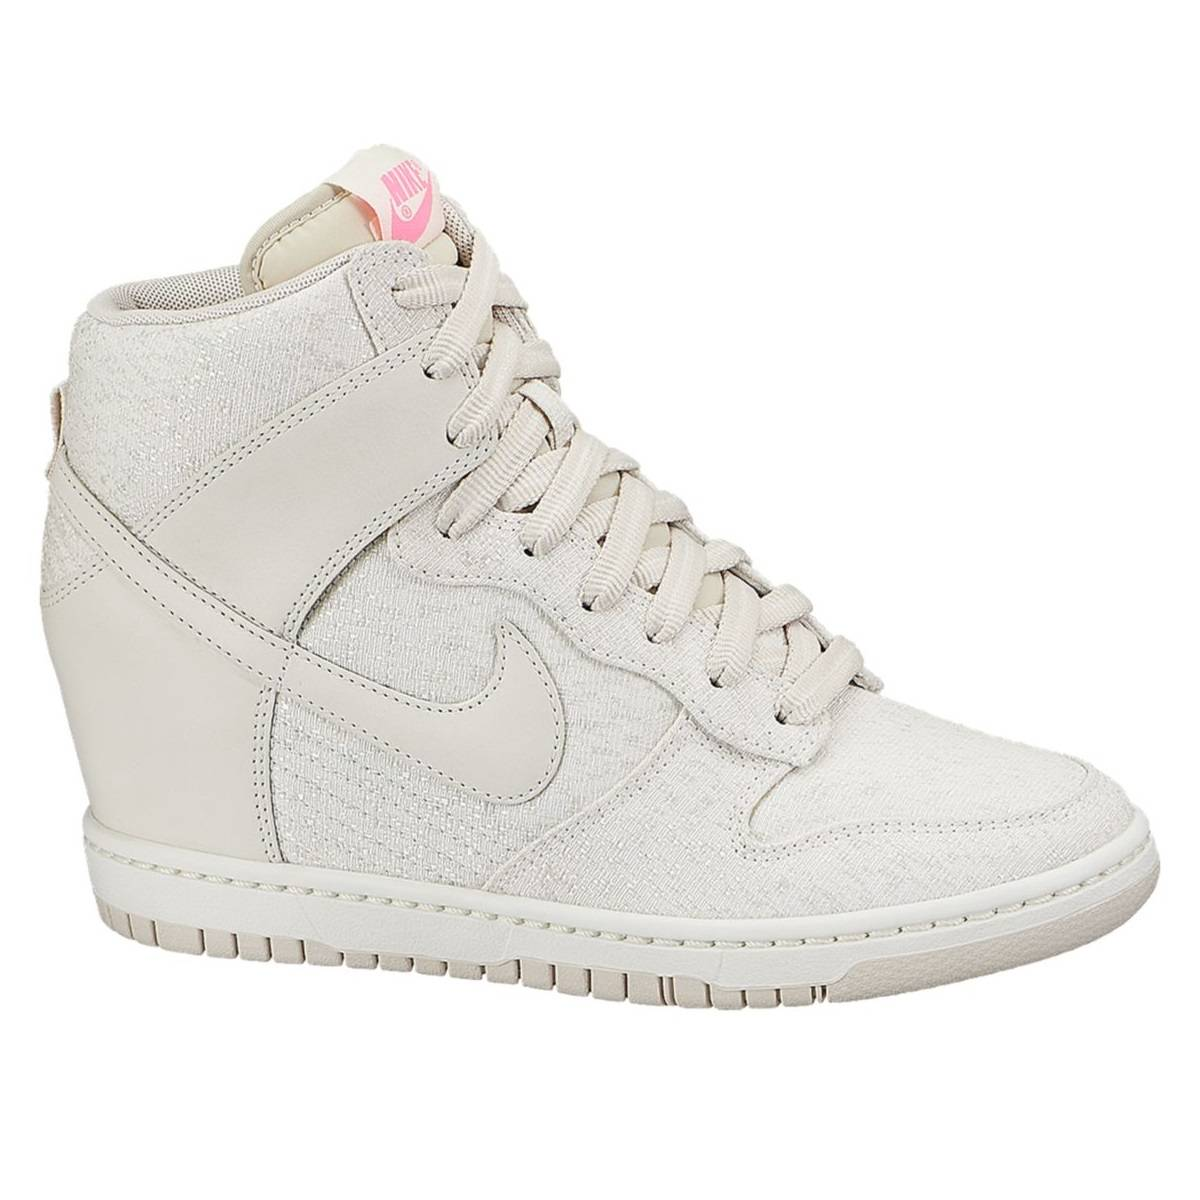 nike dunk sky hi txt schuhe turnschuhe sneaker keilabsatz damen wei lila ebay. Black Bedroom Furniture Sets. Home Design Ideas